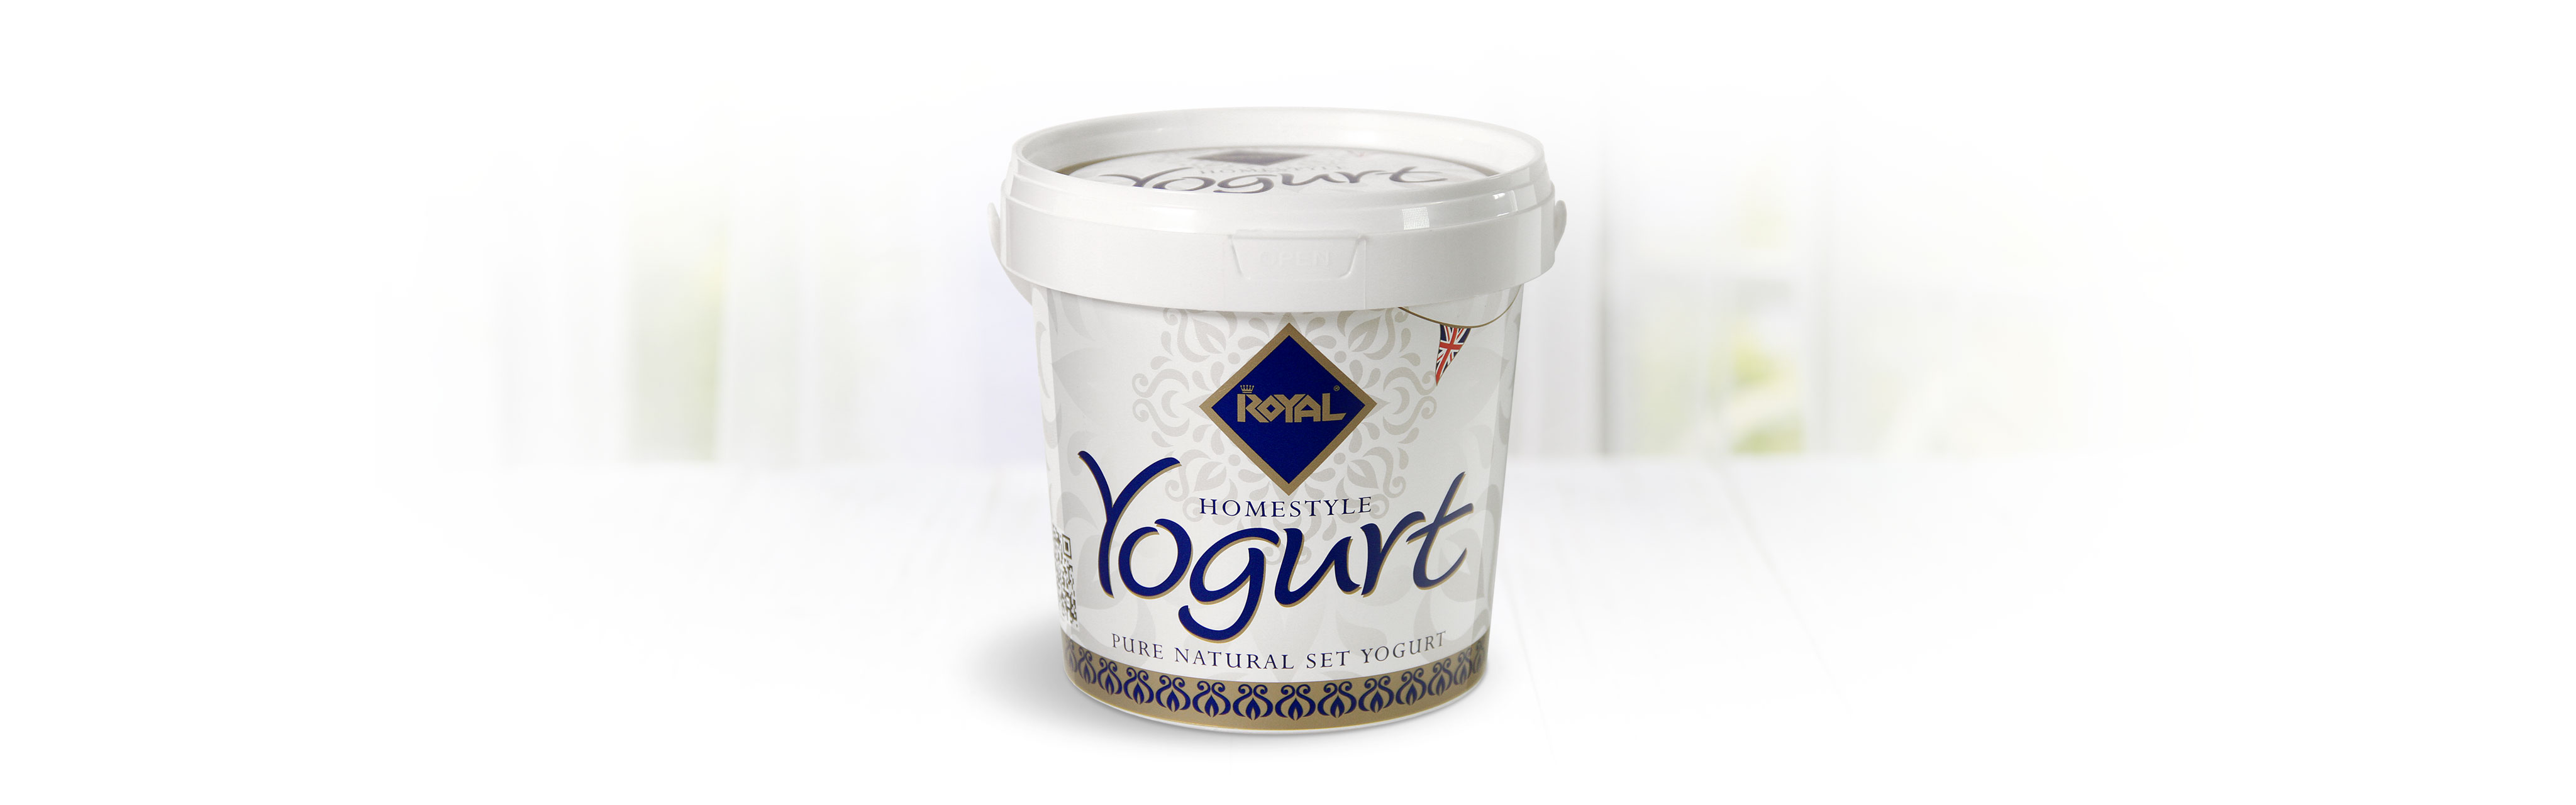 Royal-Yogurt-4096x1280